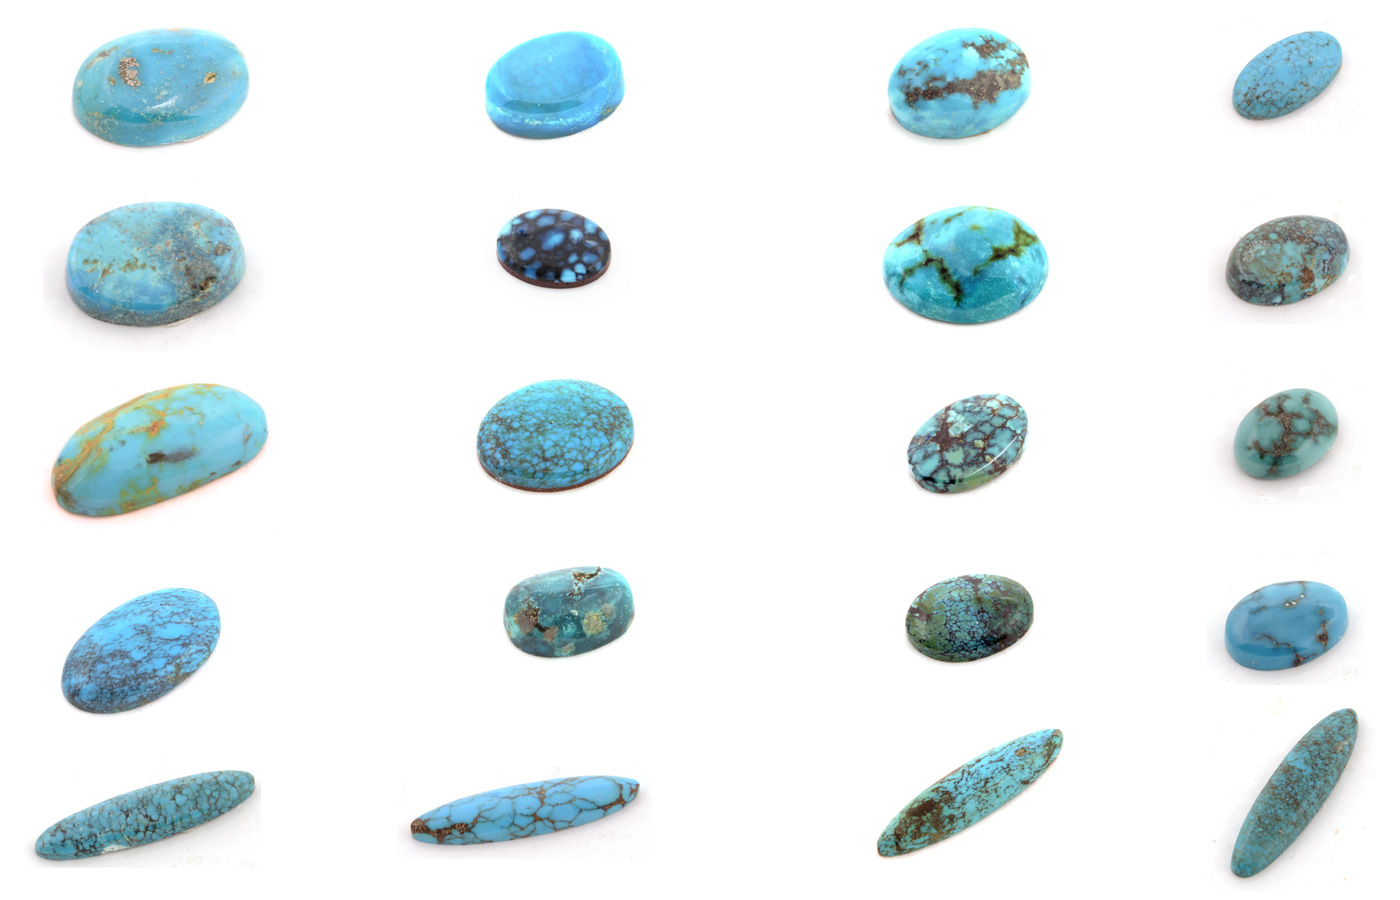 Different types and styles of turquoise